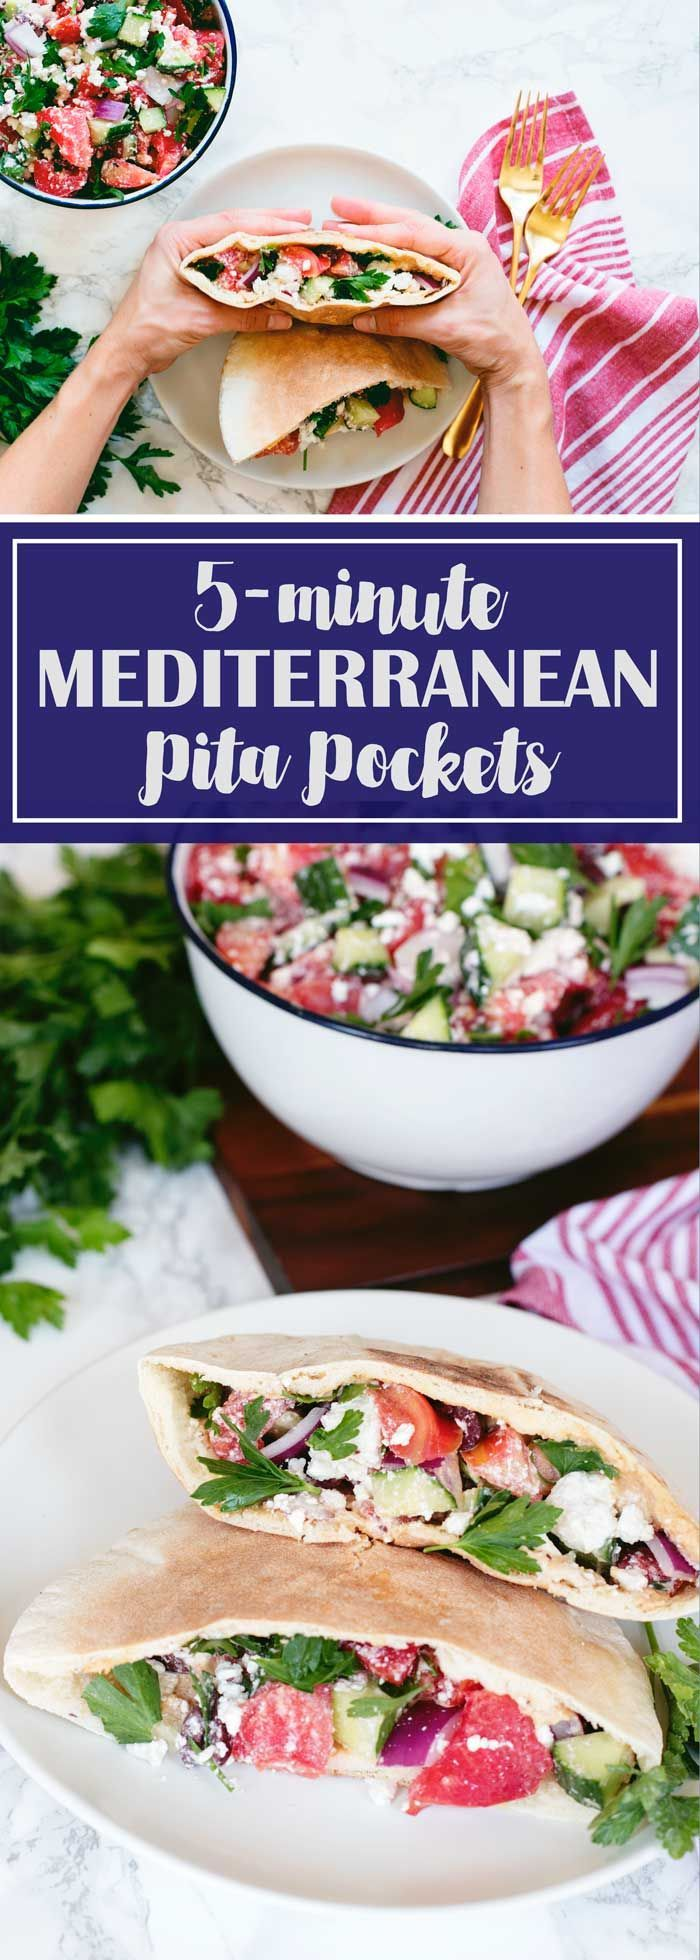 5-MINUTE Meal :: Mediterranean Pita Pockets with tomatos, feta, cucumbers, and hummus - healthy and delicious!